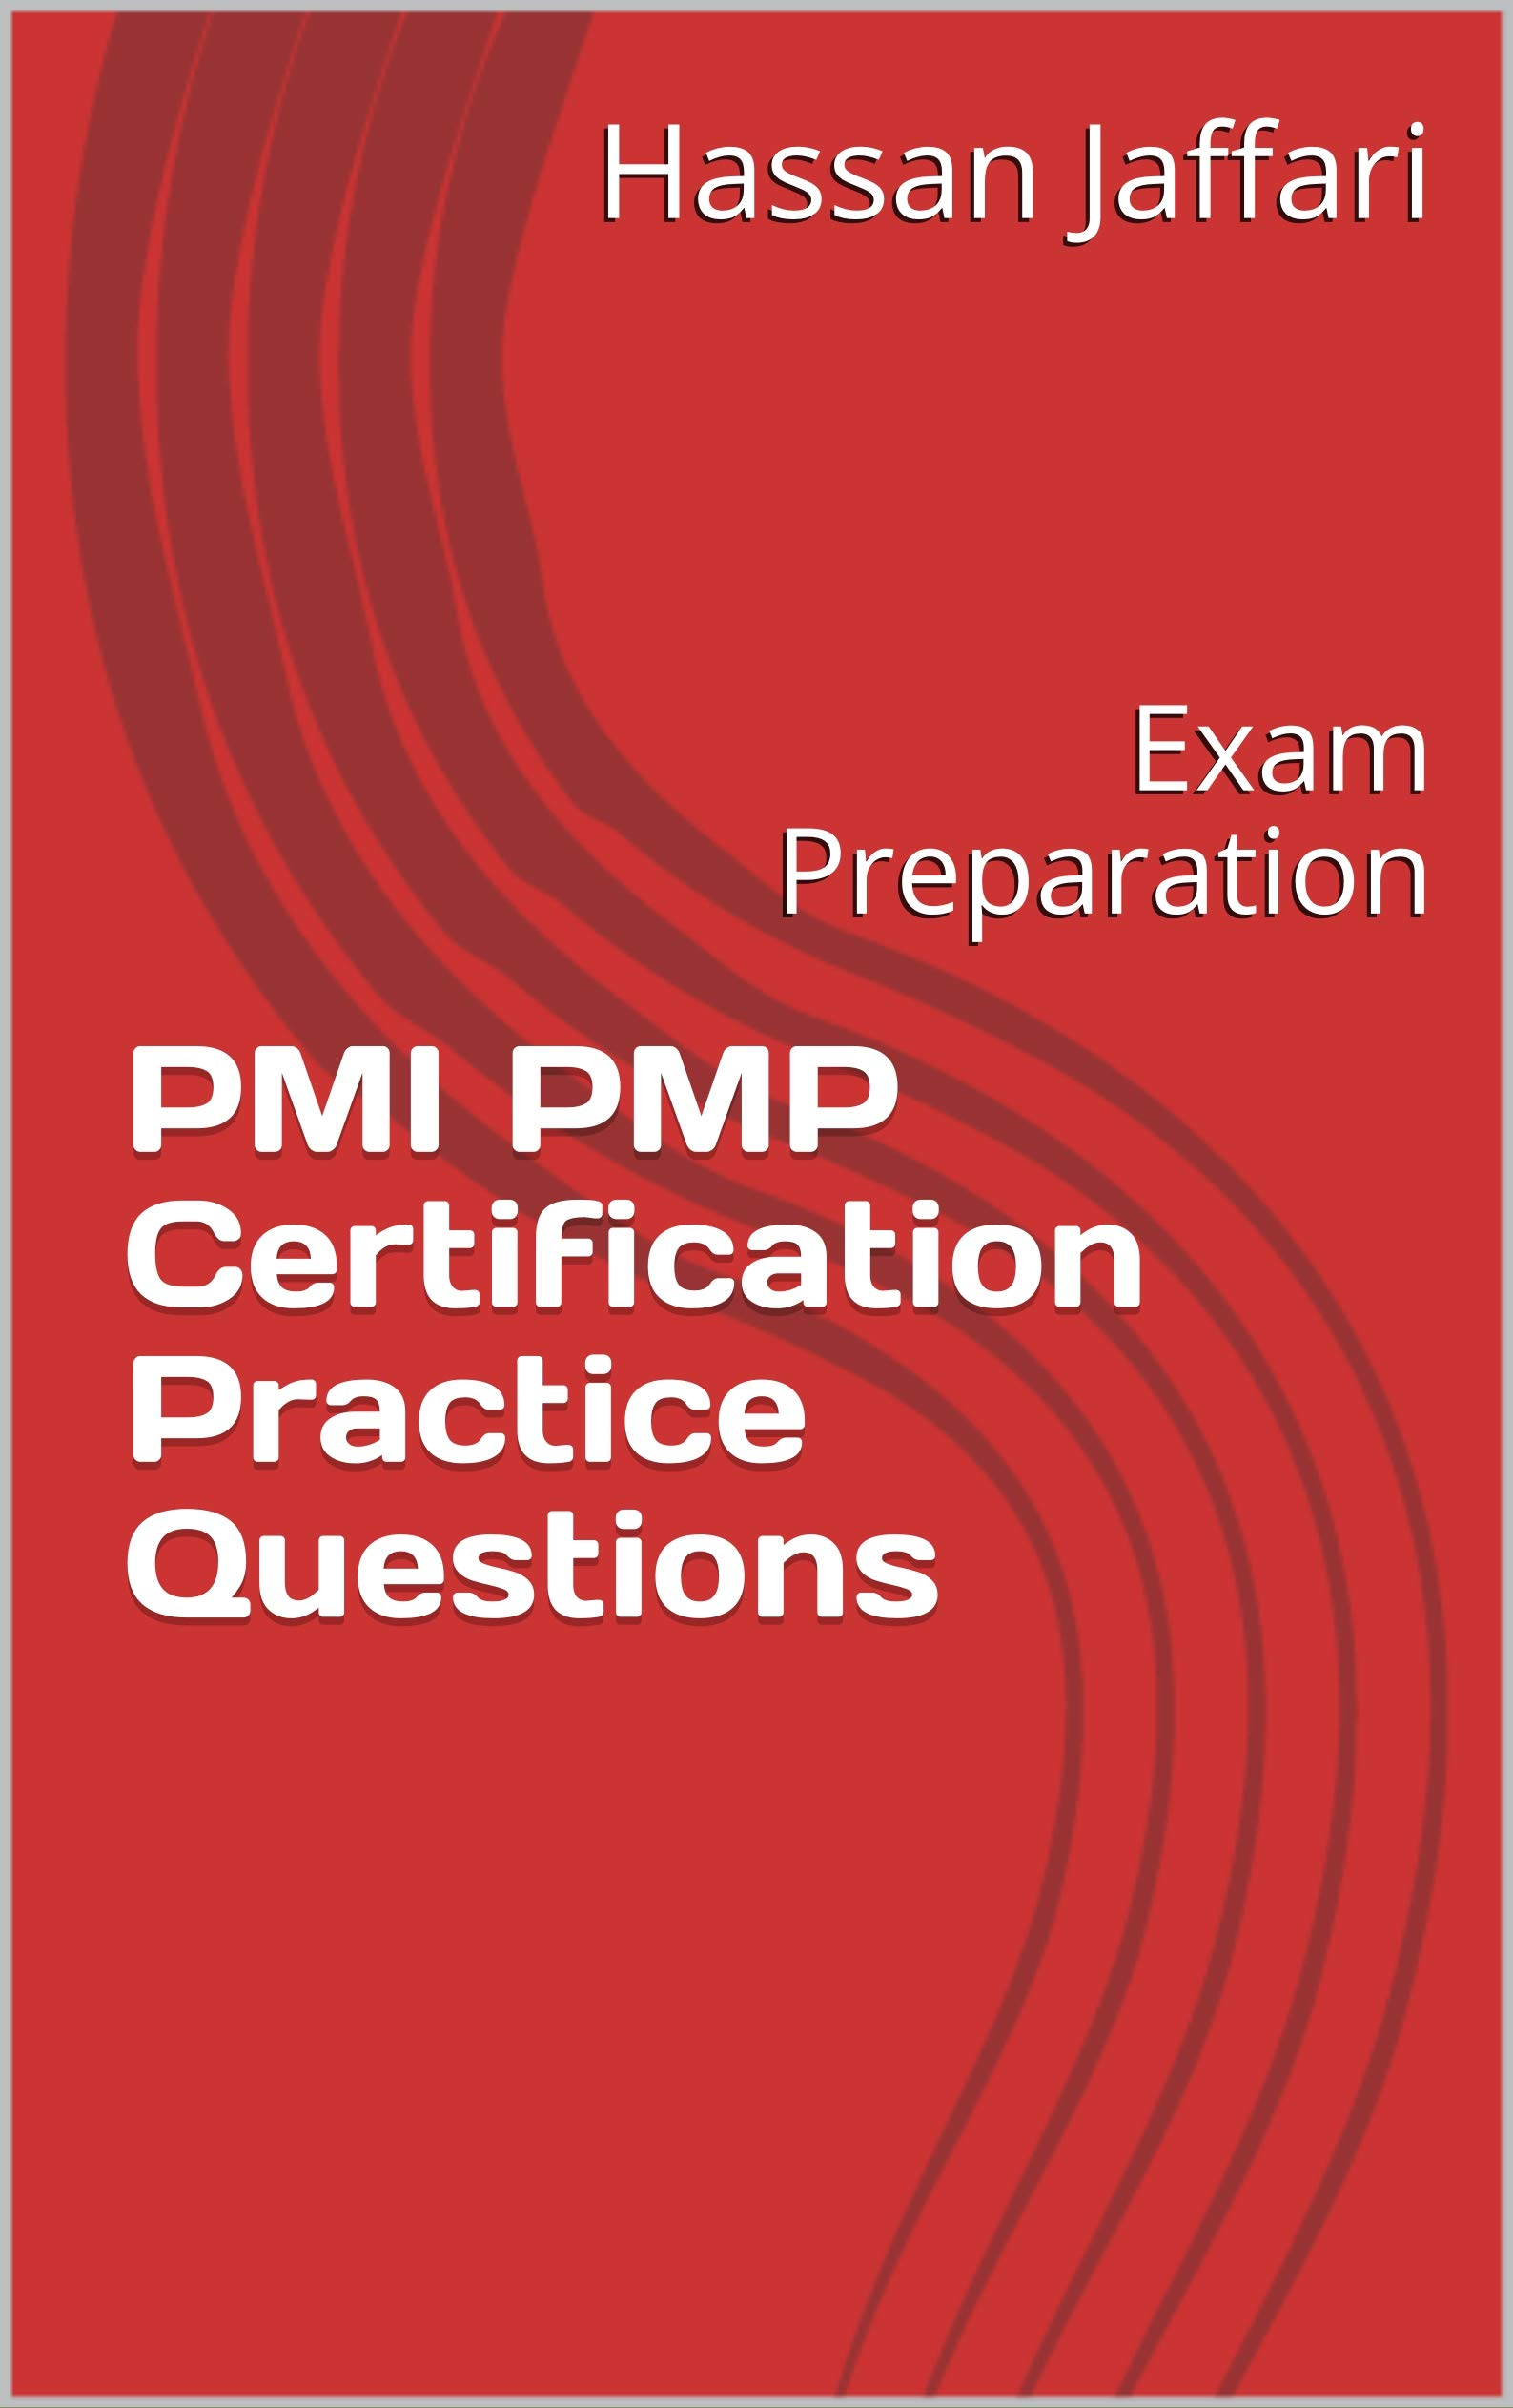 PMI PMP Certification Practice Questions: Exam Preparation